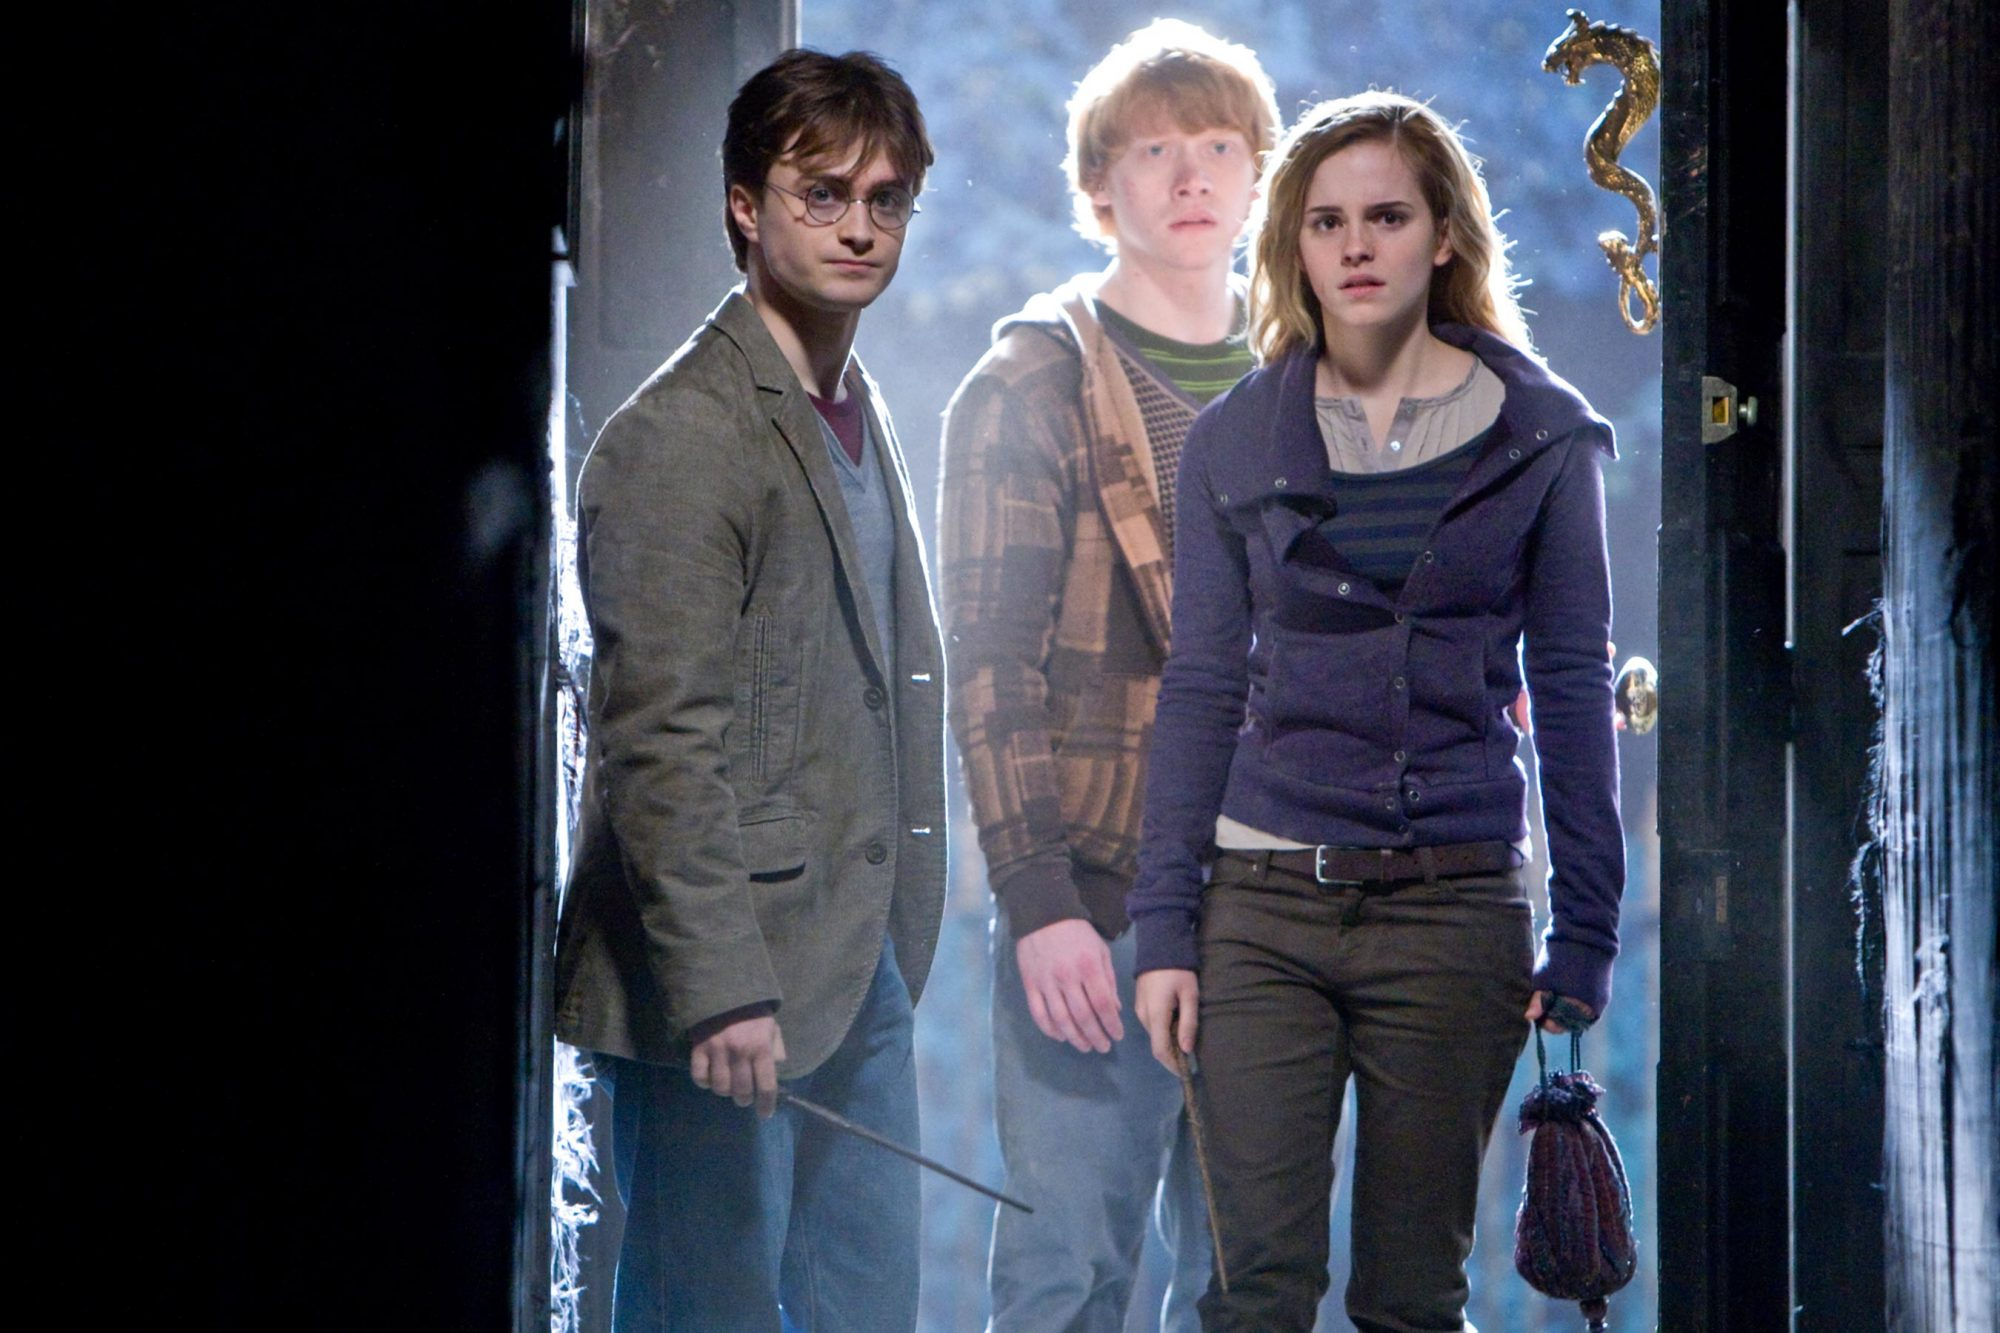 HARRY POTTER AND THE DEATHLY HALLOWS: PART 1, from left: Daniel Radcliffe, Rupert Grint, Emma Watson